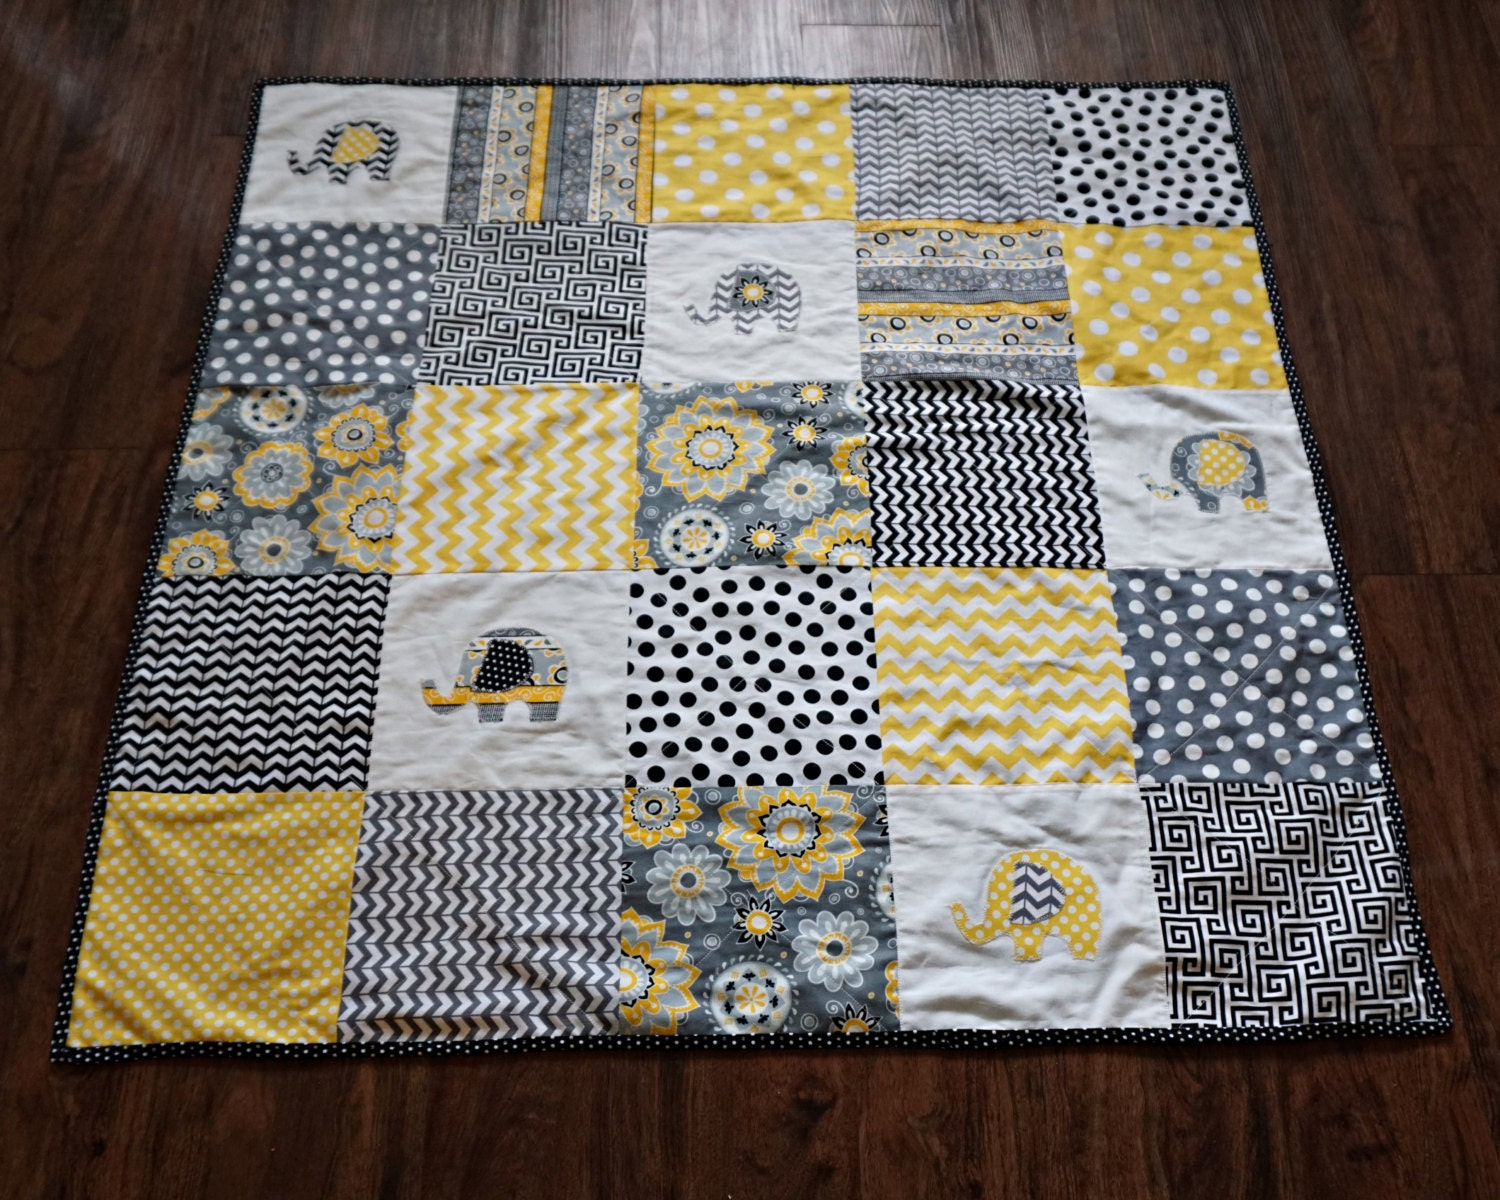 Baby Quilt Modern Quilt Elephant Quilt By Cozycuddlequilts